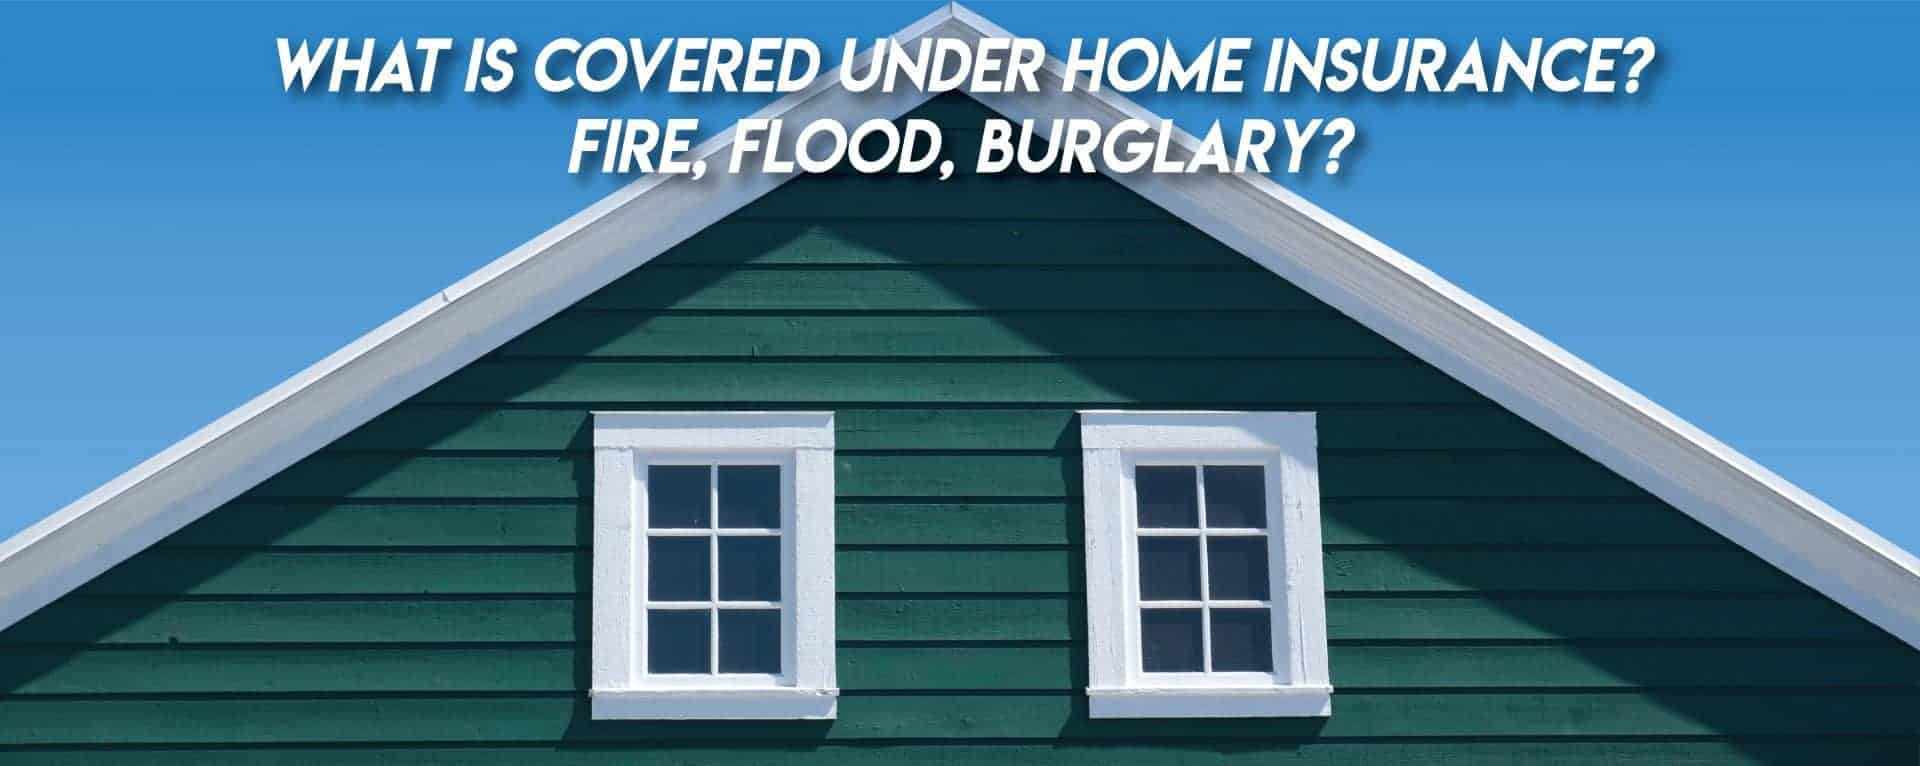 What is covered under Home Insurance? Fire, Flood ...